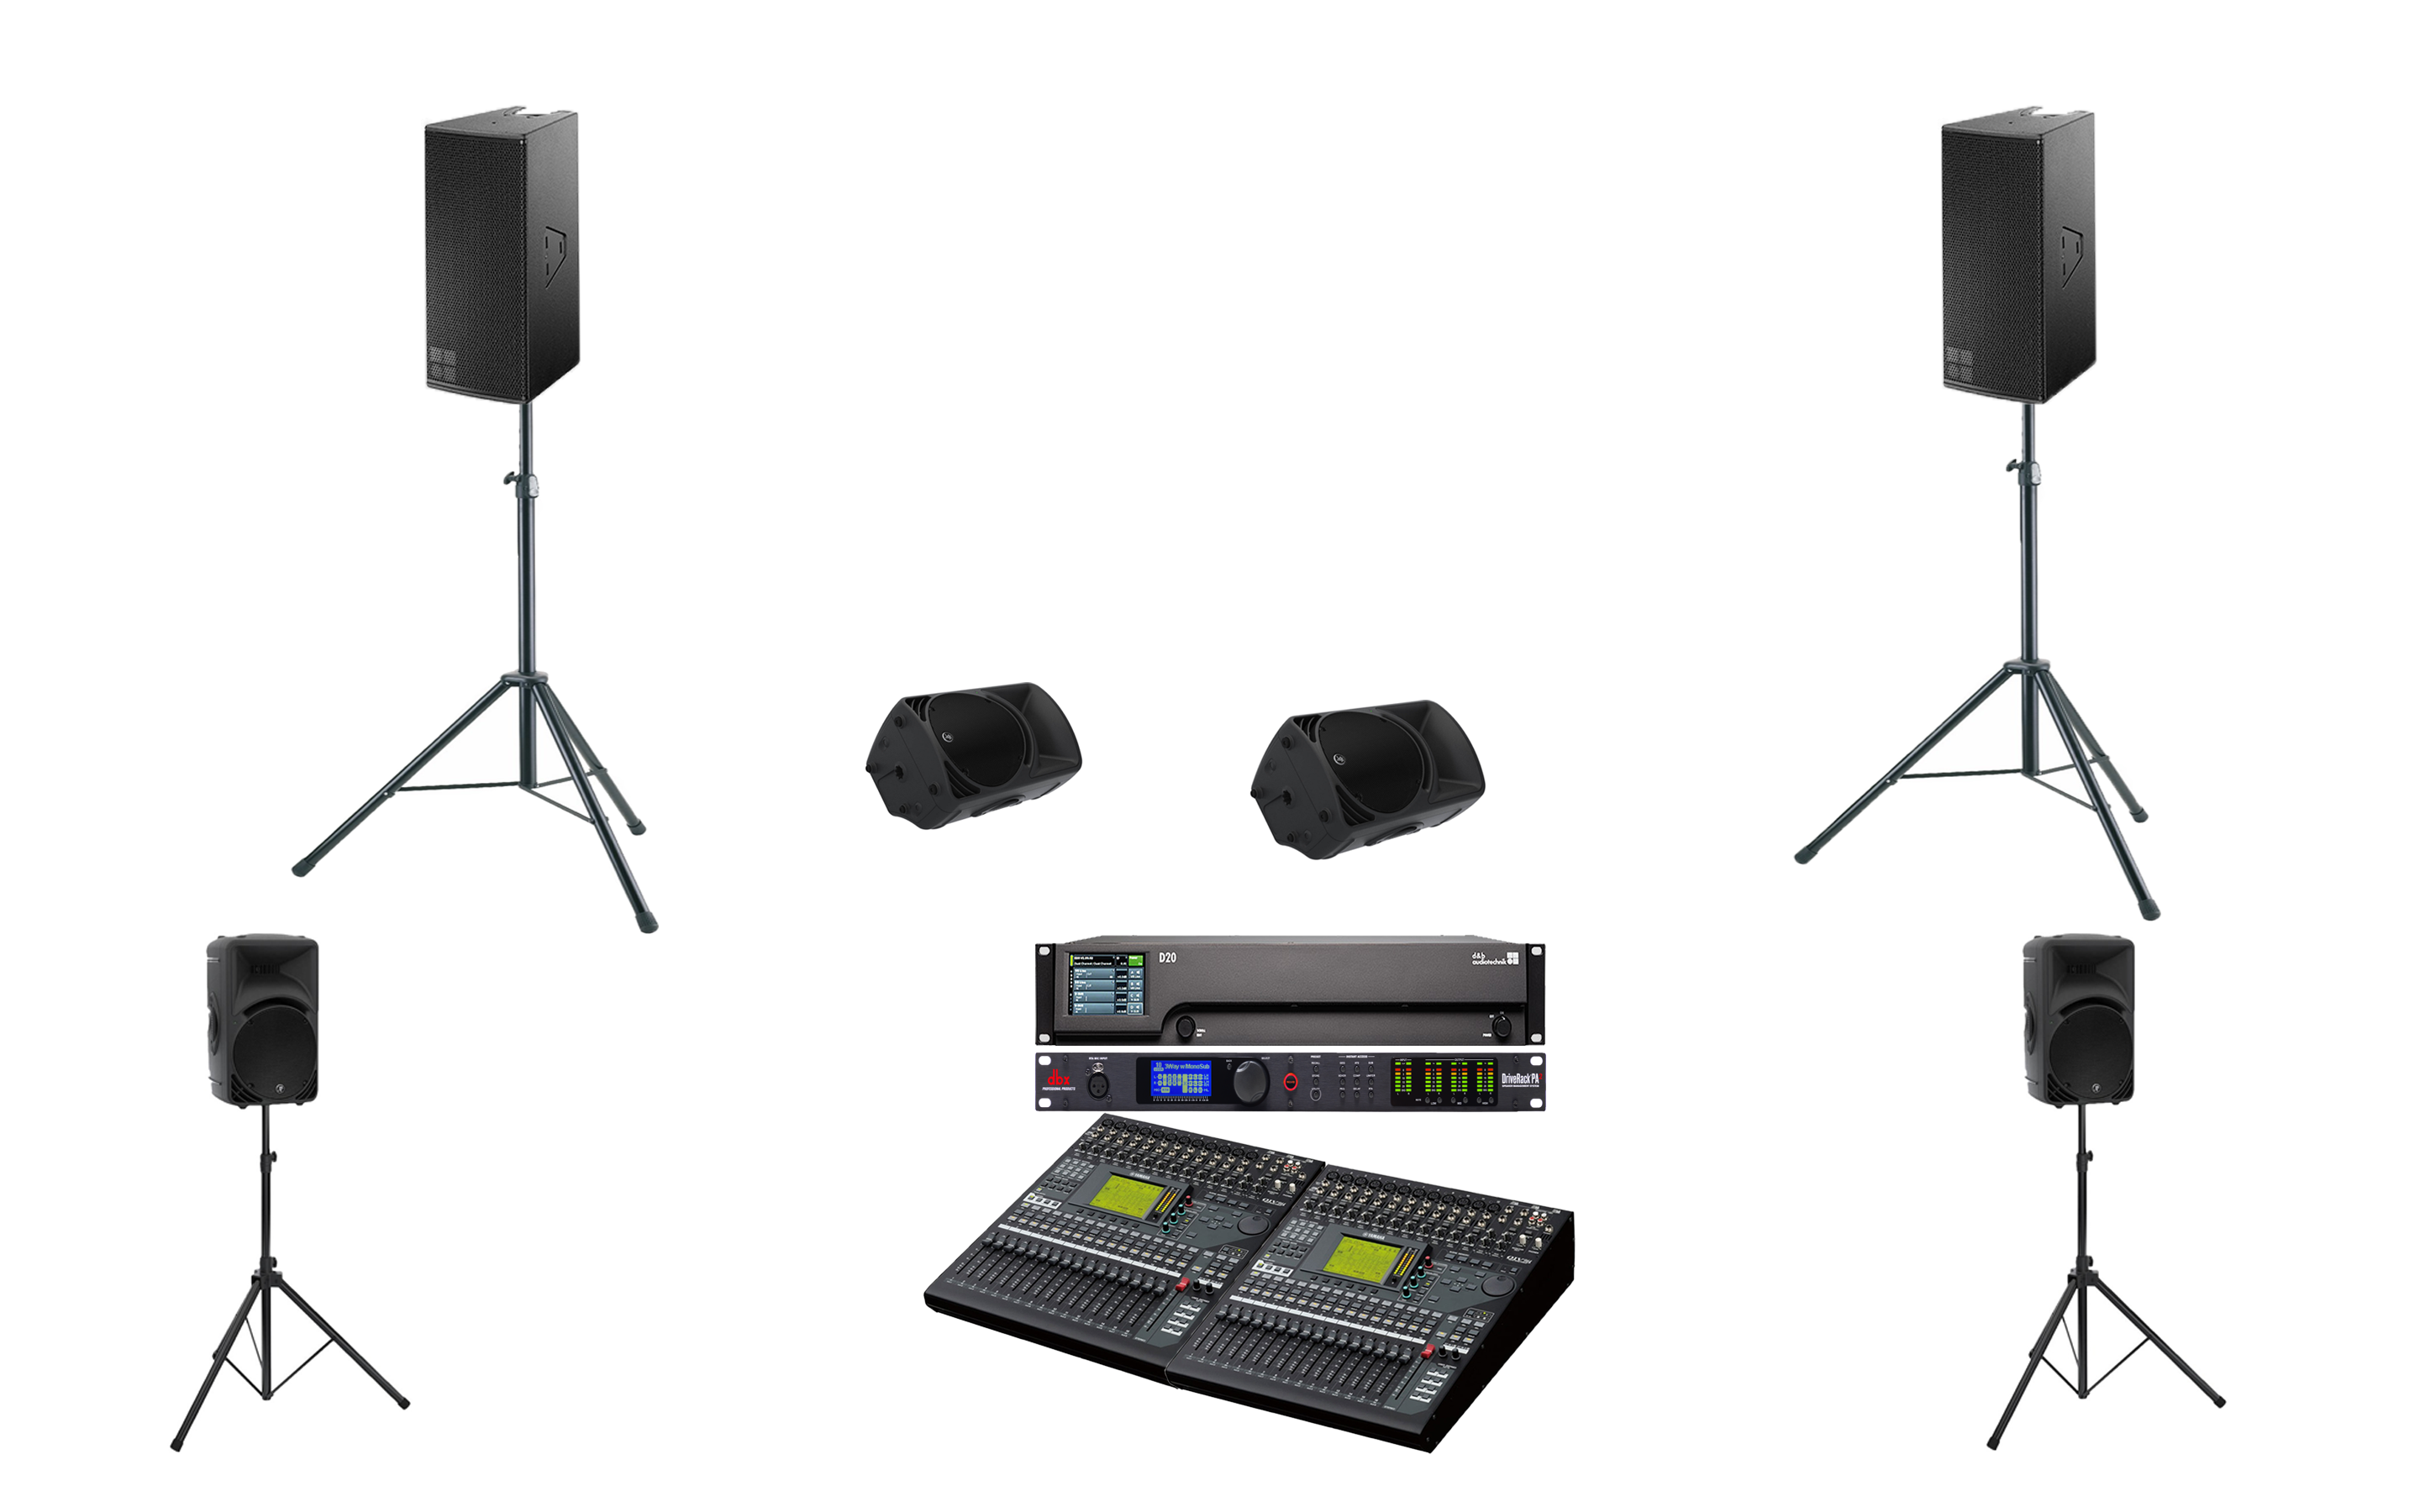 Sound hire for corporate event - conferencing, sound equipment rental for speeches, sound hire manchester,